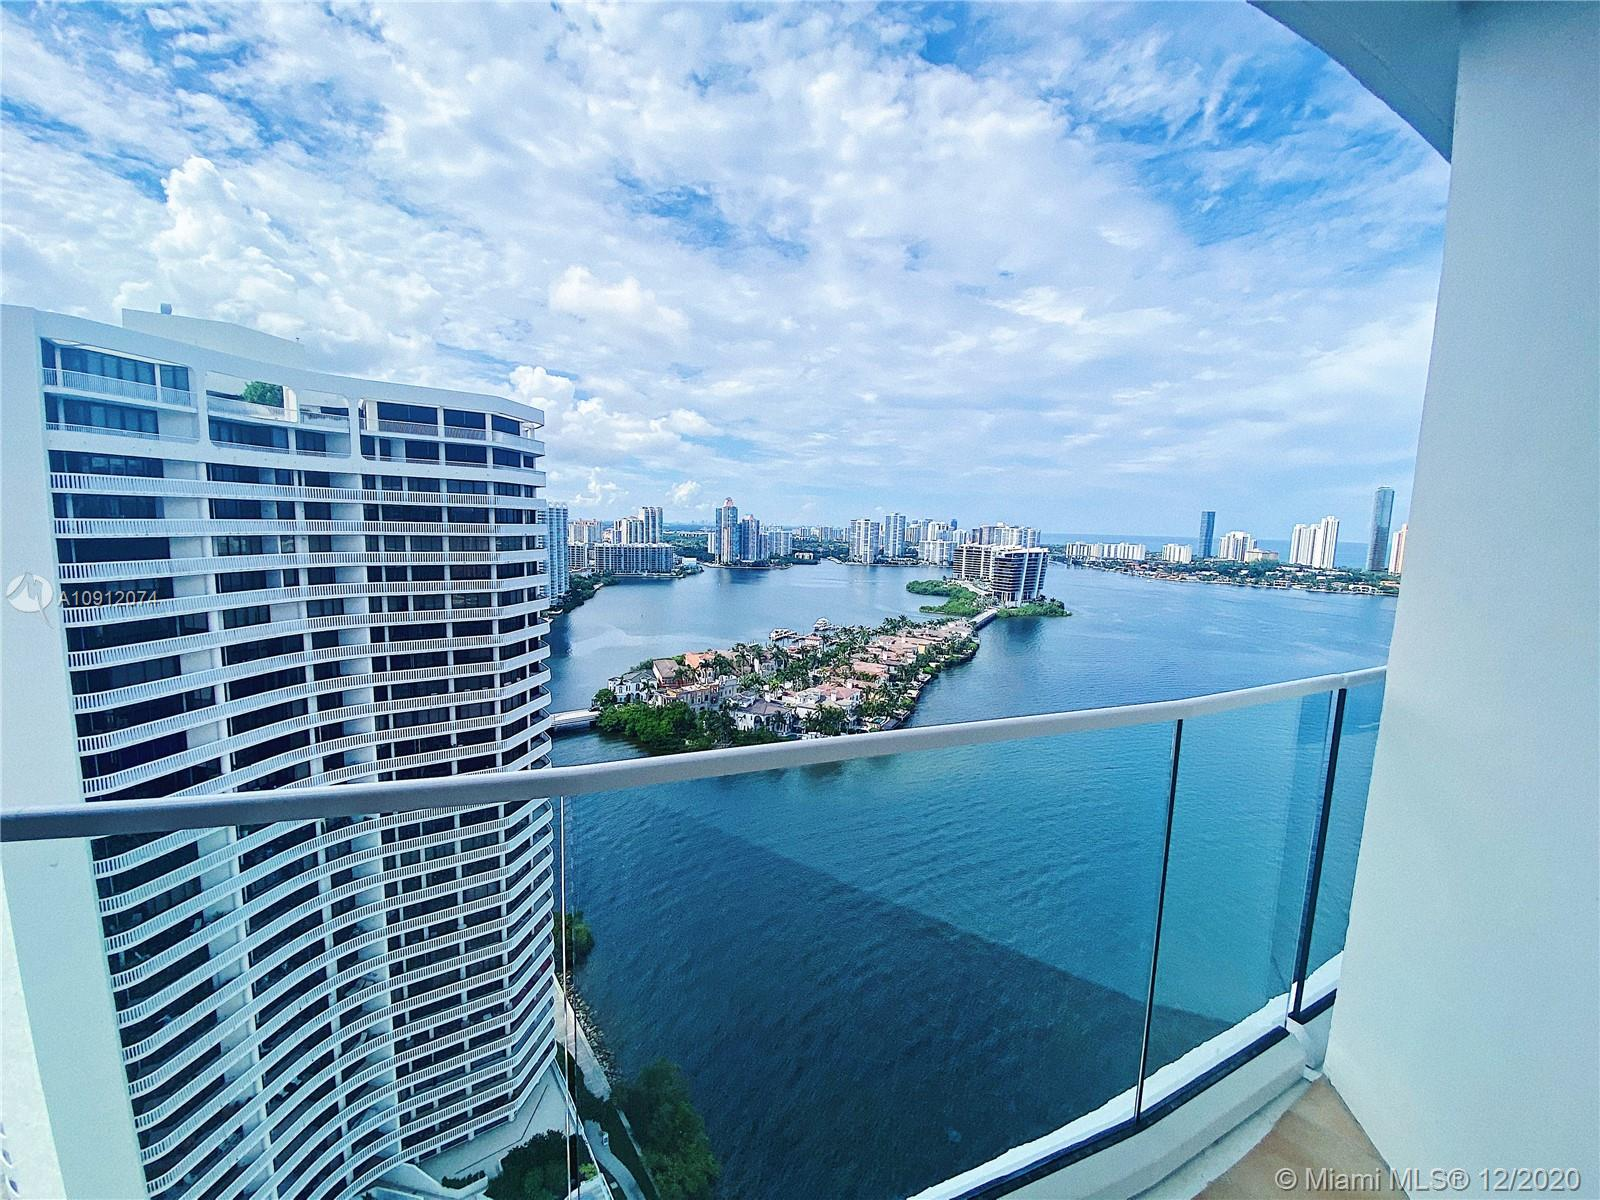 2800 Williams Island #2903 - 2800 Island Blvd #2903, Aventura, FL 33160